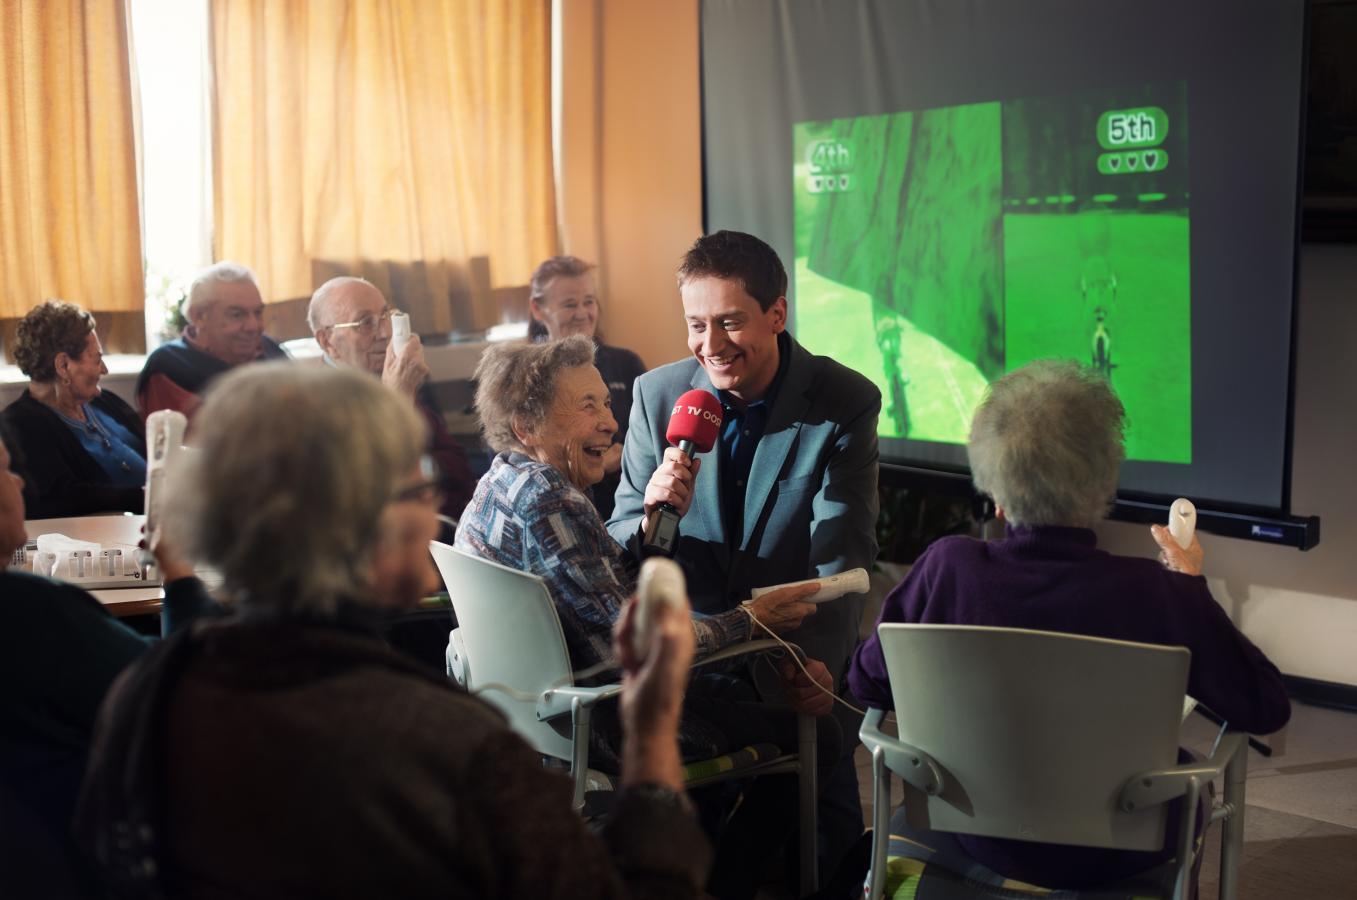 tv-oost-image-campaign-2013